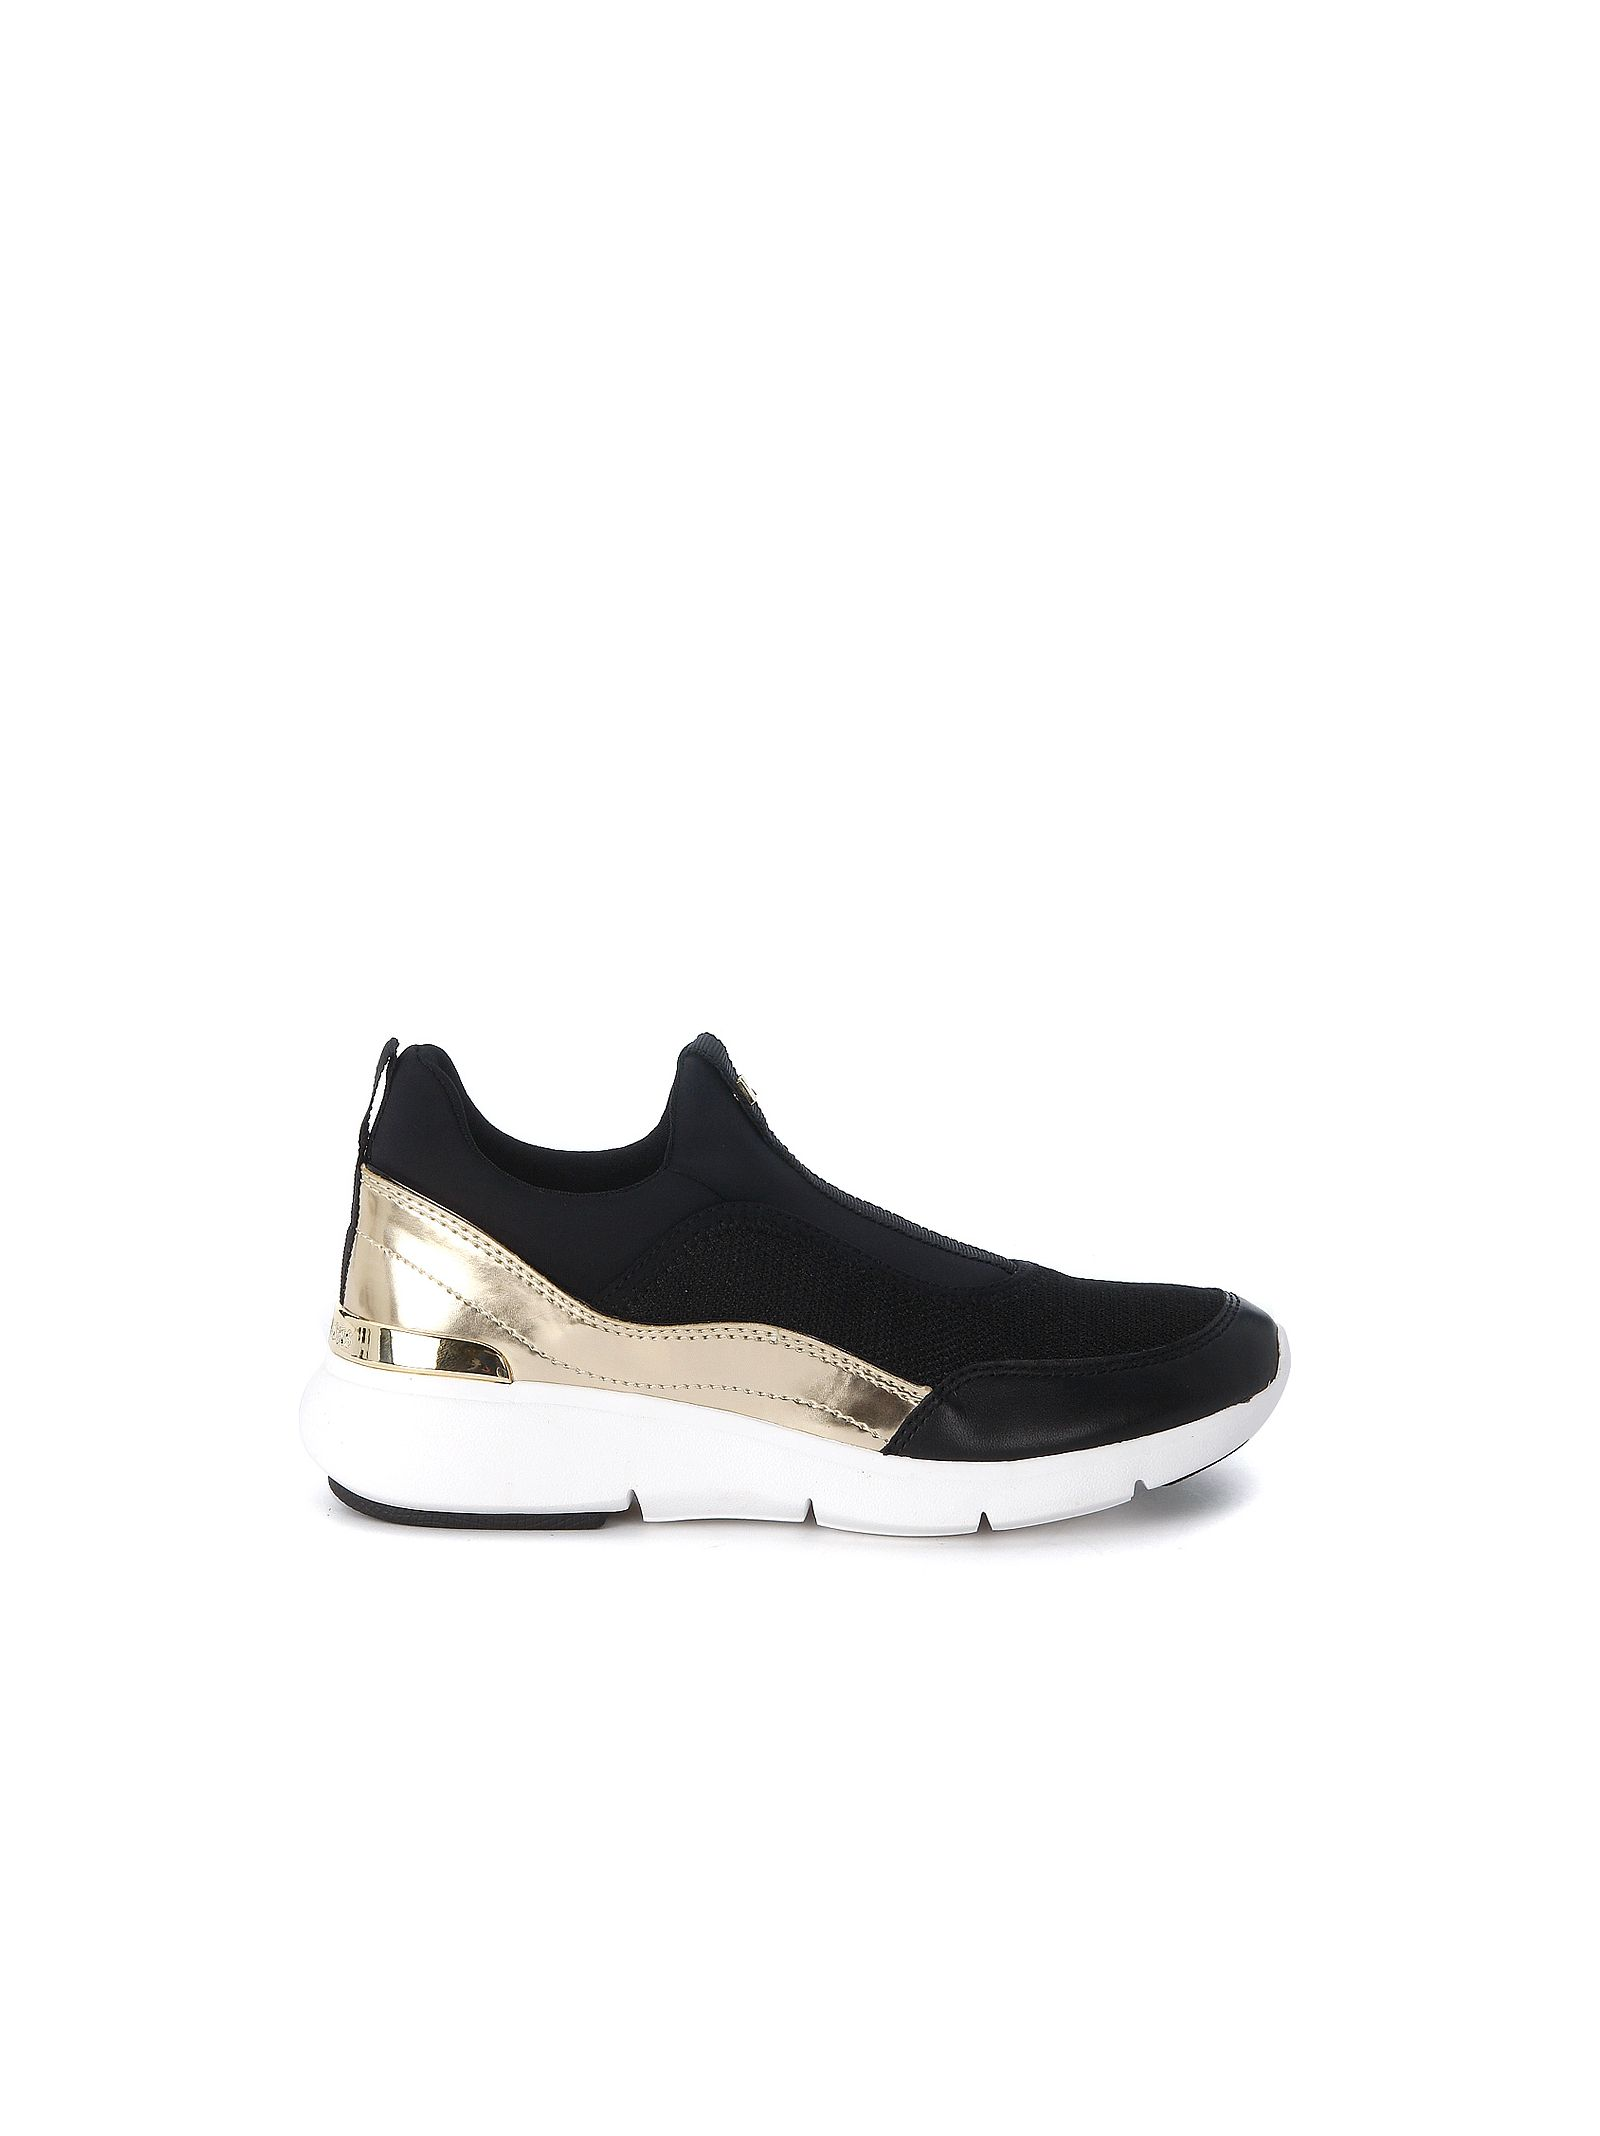 michael kors female  michael kors ace sneaker in black and gold neoprene and leather